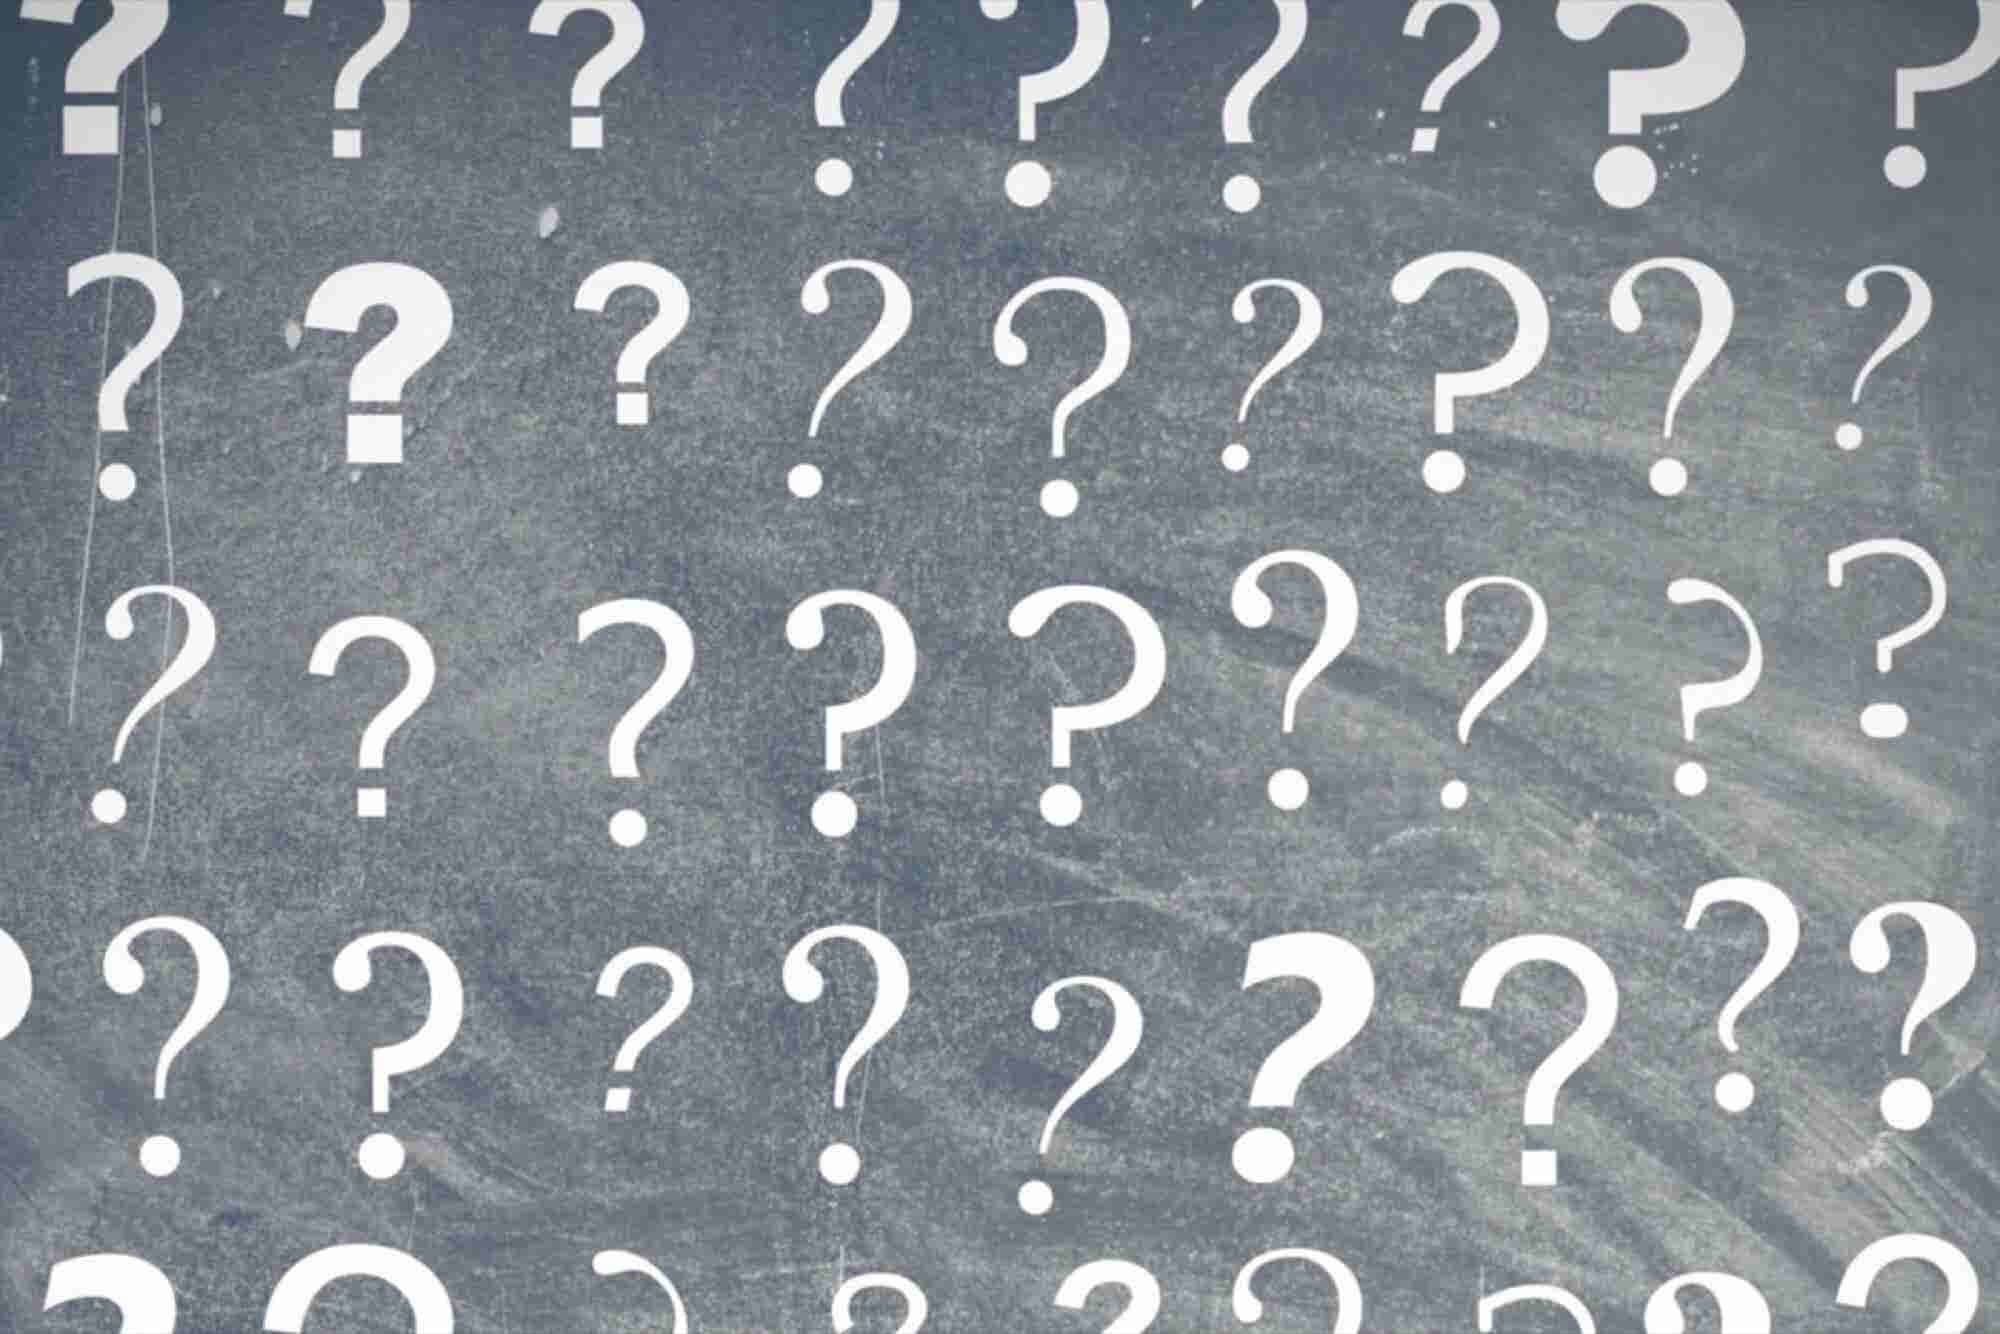 8 Questions to Ask Before Hiring a PR Firm